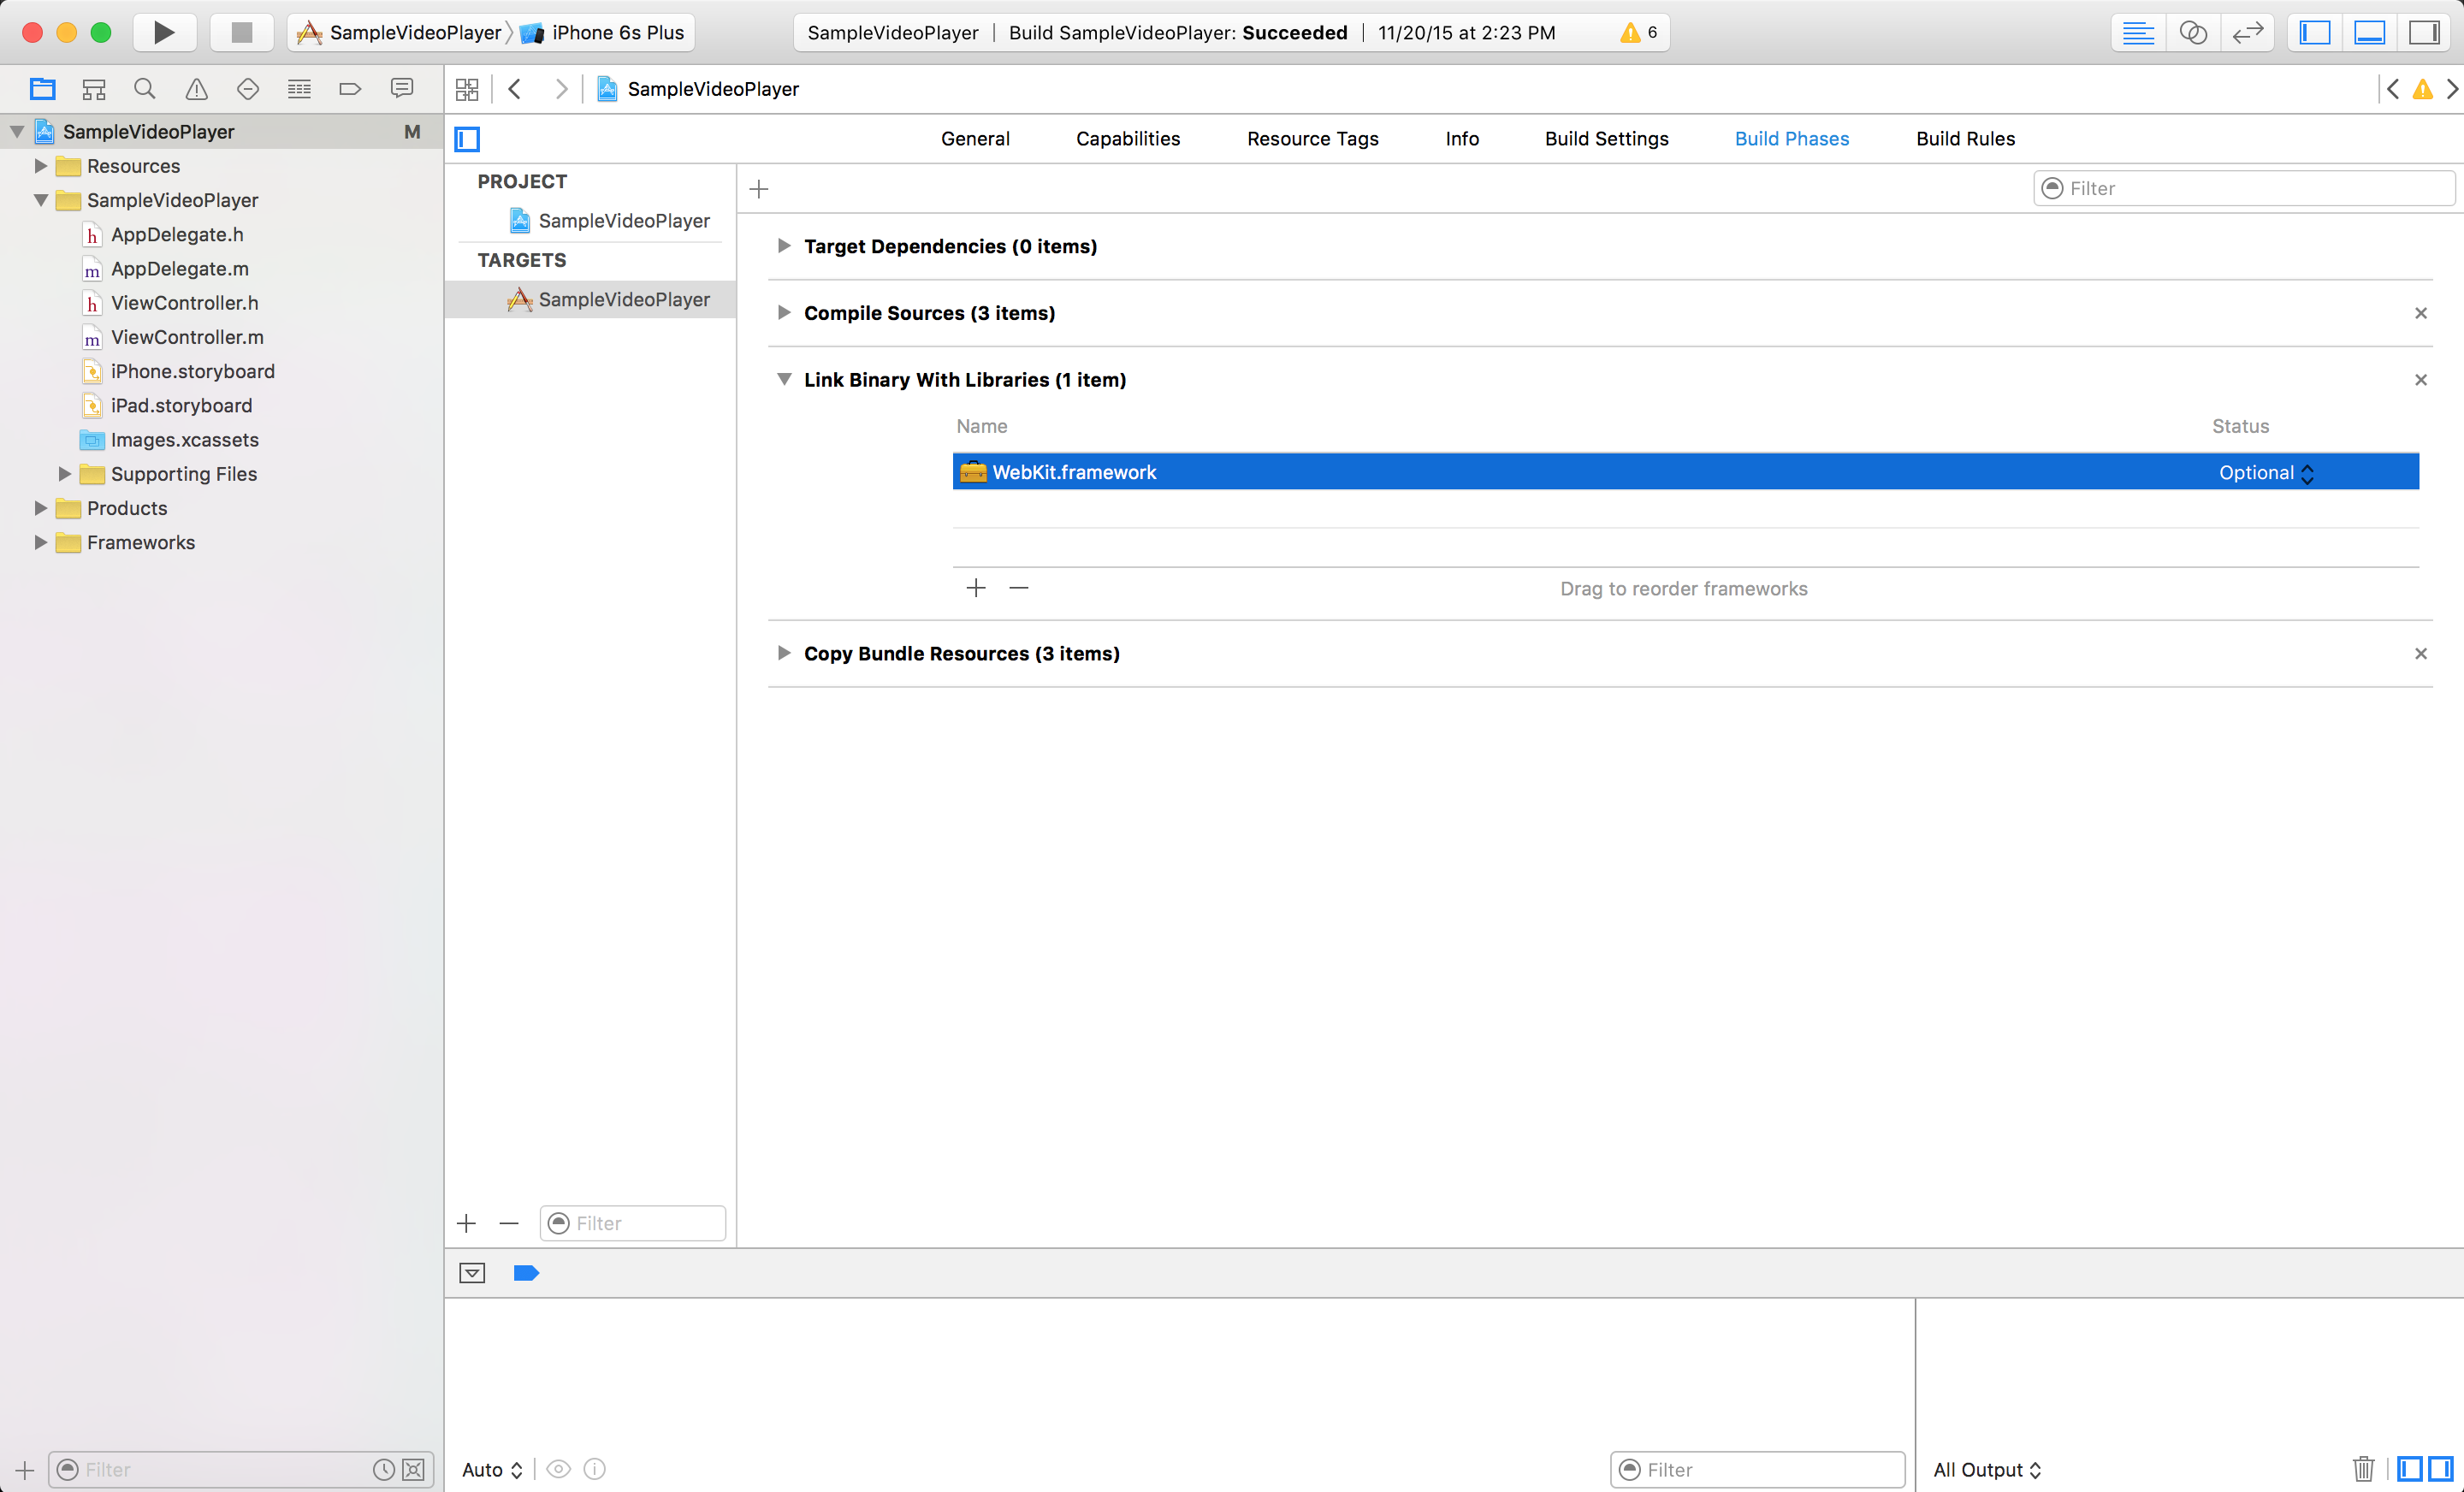 WebKit.framework selected in the Xcode interface